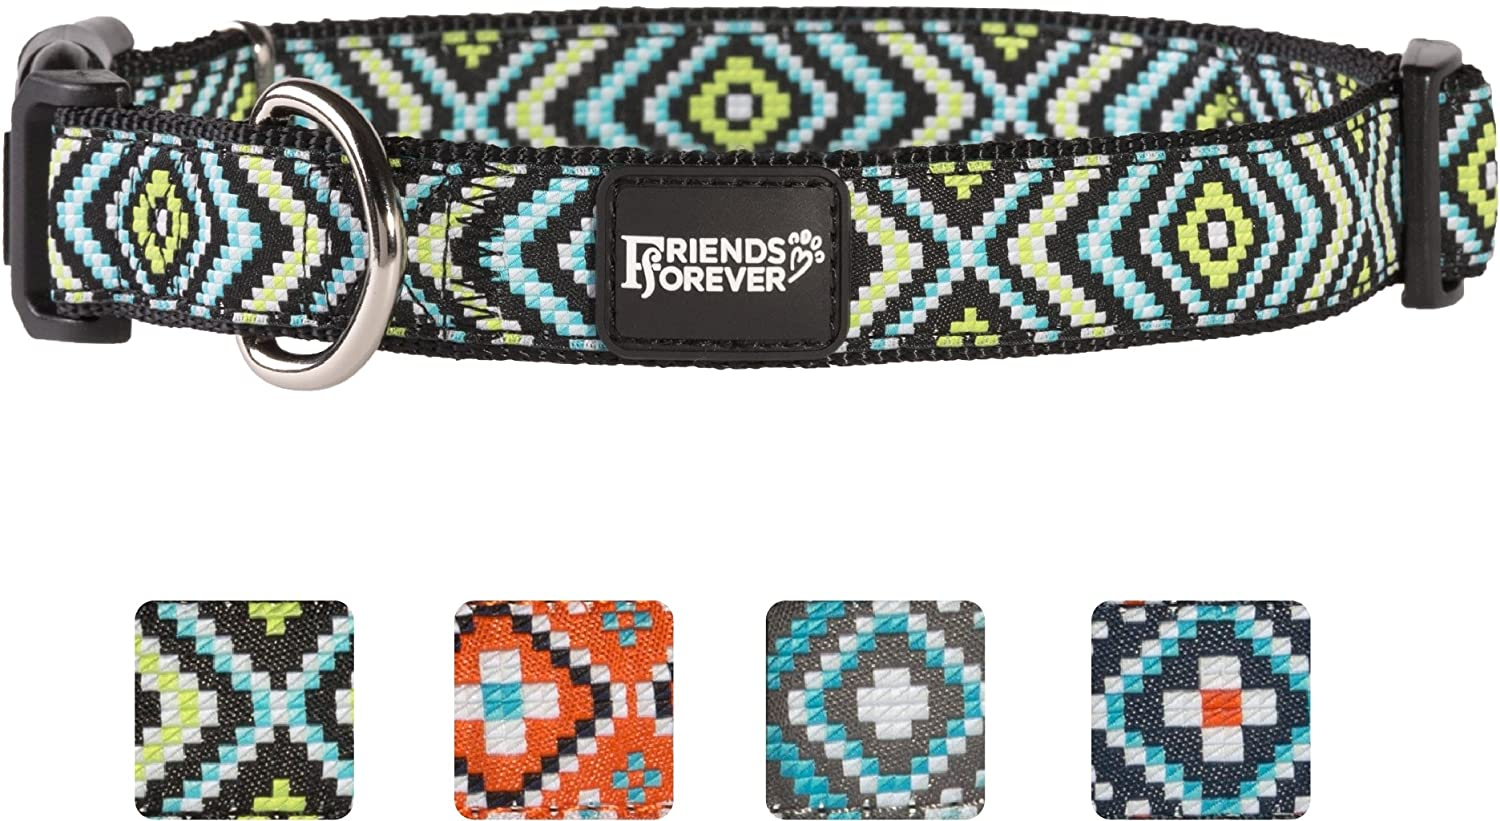 Green Large 18-26\ Green Large 18-26\ Friends Forever Dog Collar for Dogs Fashion Woven Square Pattern Cute Puppy Collar, Green Large 18-26